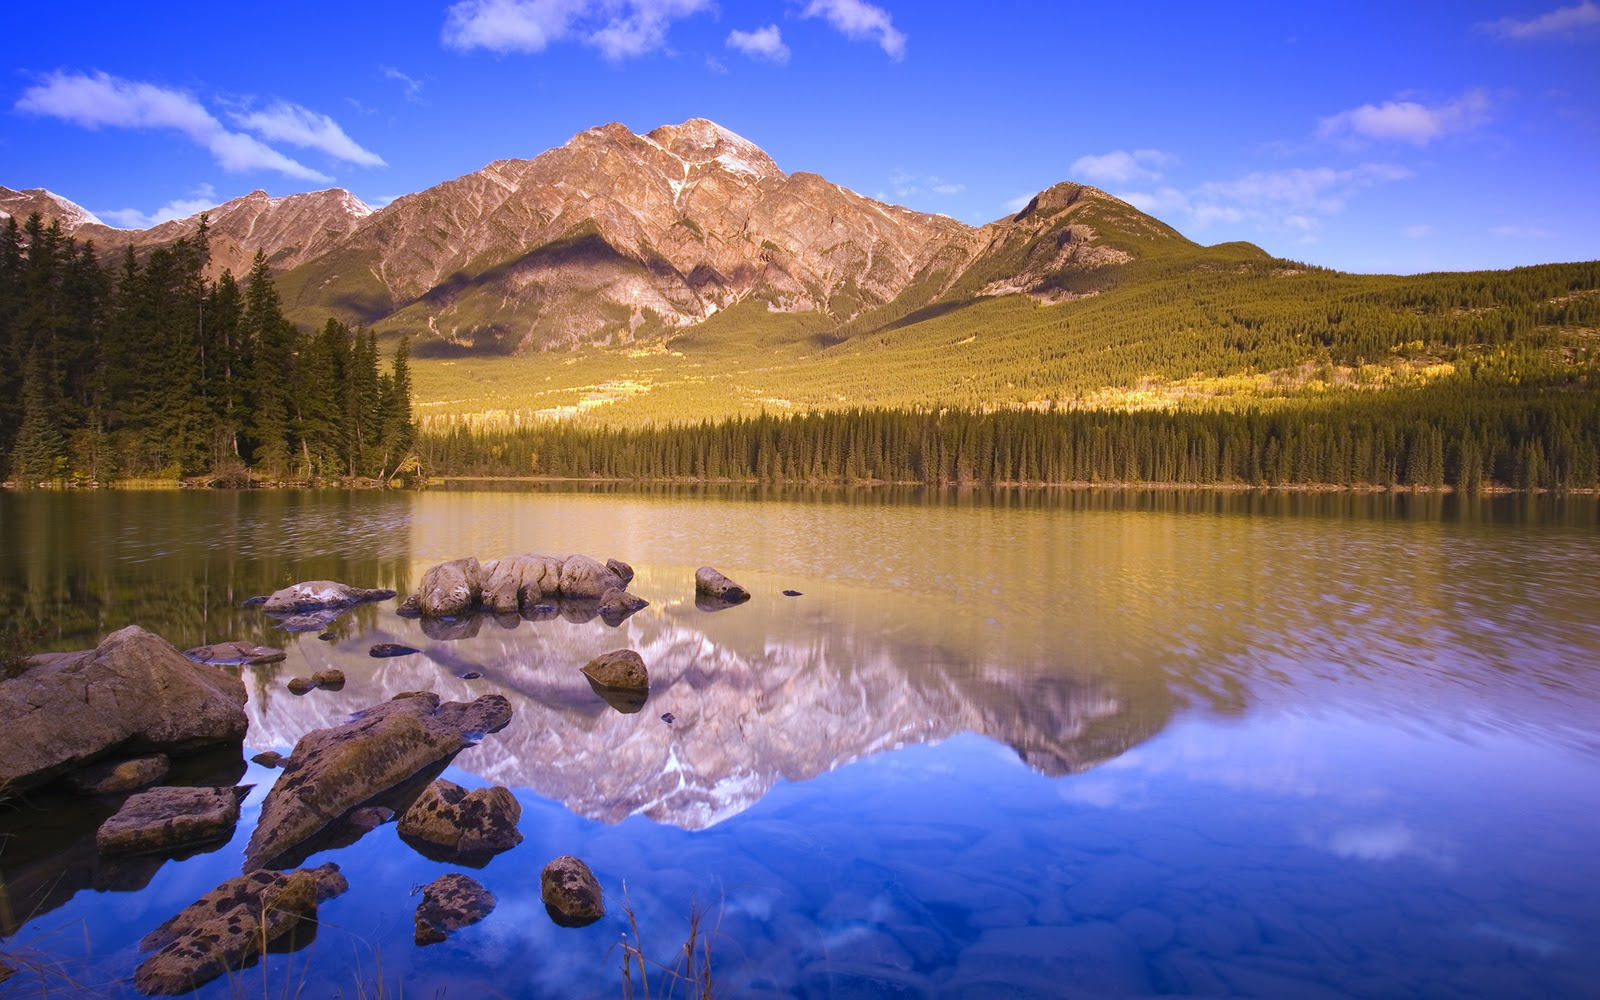 http://3.bp.blogspot.com/_oalwC3a4OAg/TGtSUElvW7I/AAAAAAAABdA/RSDm2L9yVBc/s1600/windows-7-mountains-widescreen-wallpapers.jpg